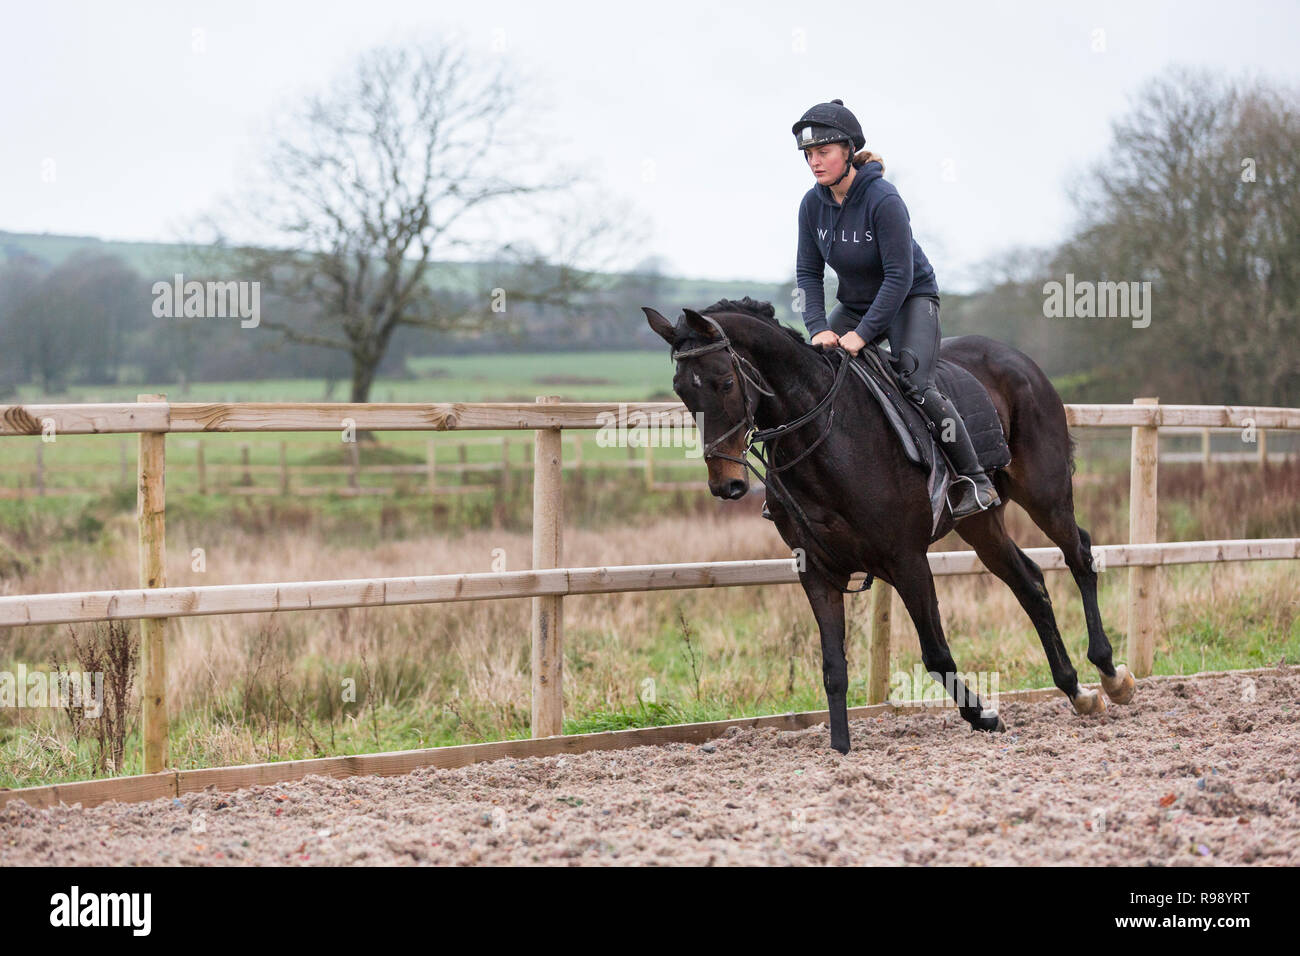 Woman rider exercising a horse at a racing stables in the countryside - Stock Image